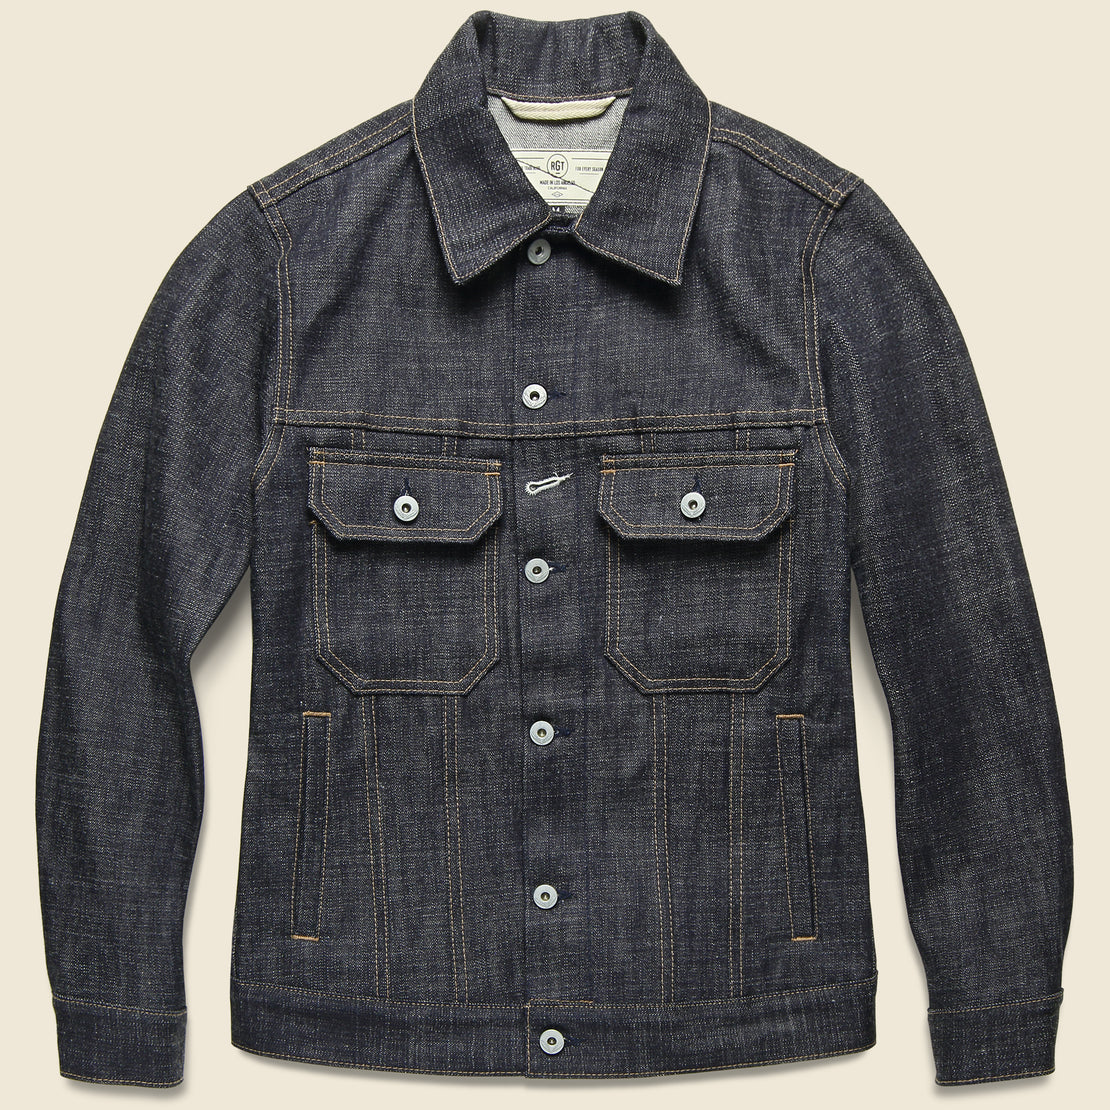 Rogue Territory Denim Cruiser Jacket - Cryptic Indigo